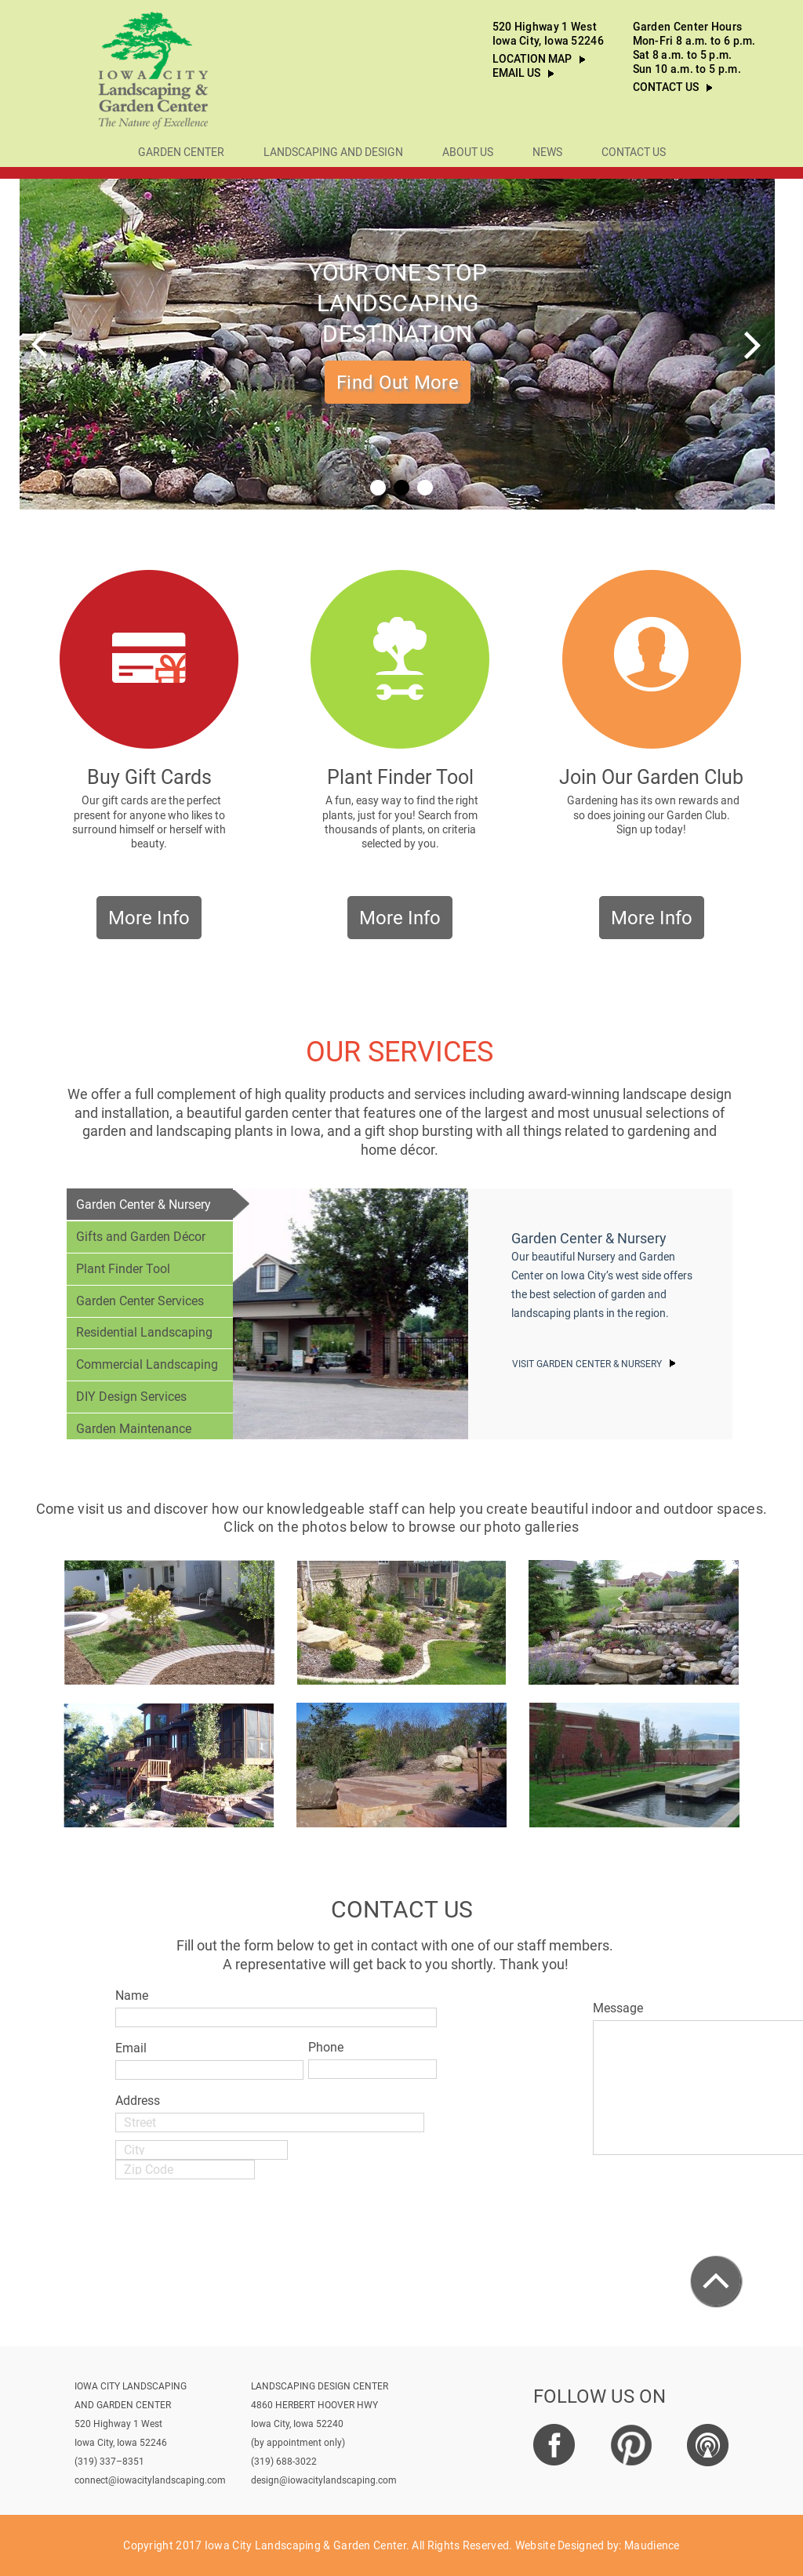 Website History - Iowa City Landscaping And Garden Center Competitors, Revenue And